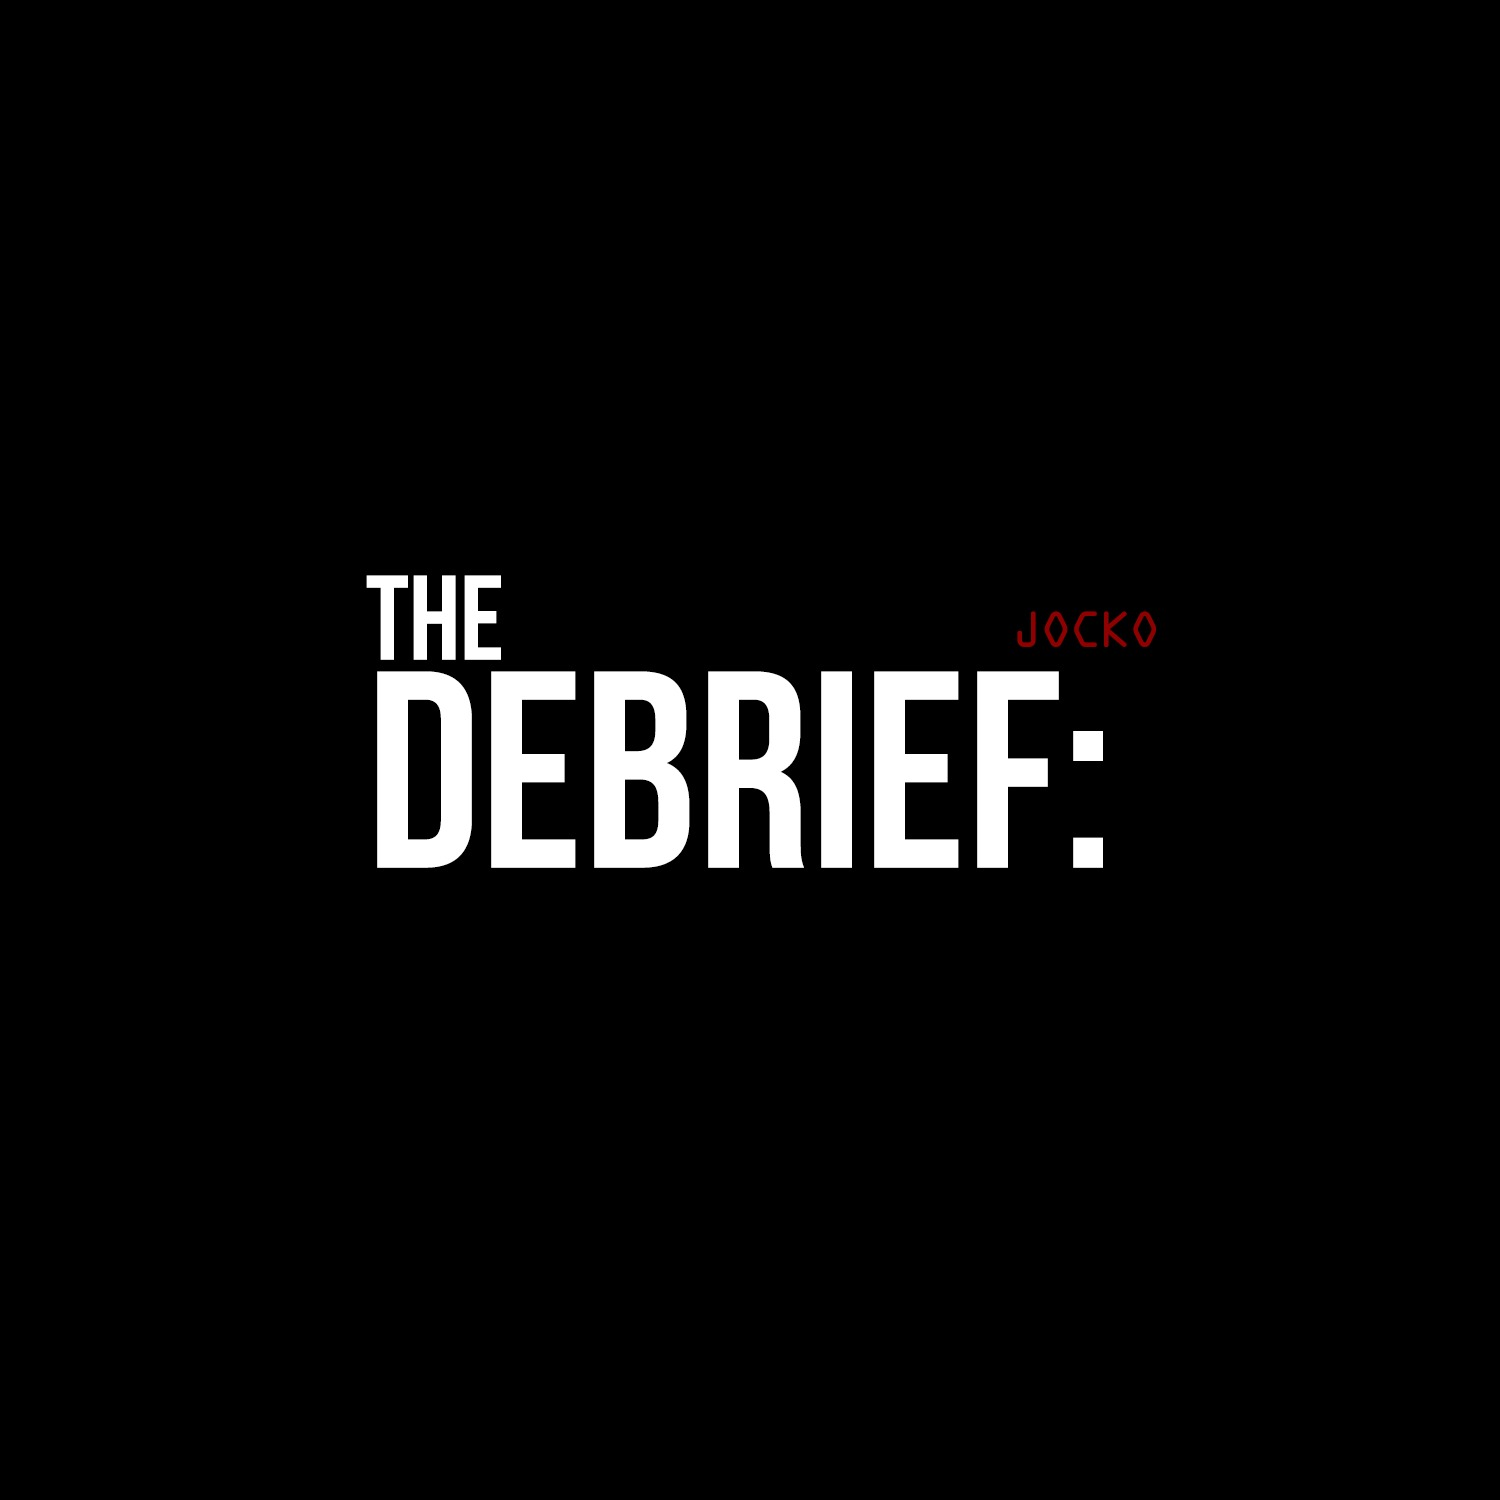 The Debrief w/ Jocko and Dave Berke #19: Winning An Argument May Create A Bigger Problem